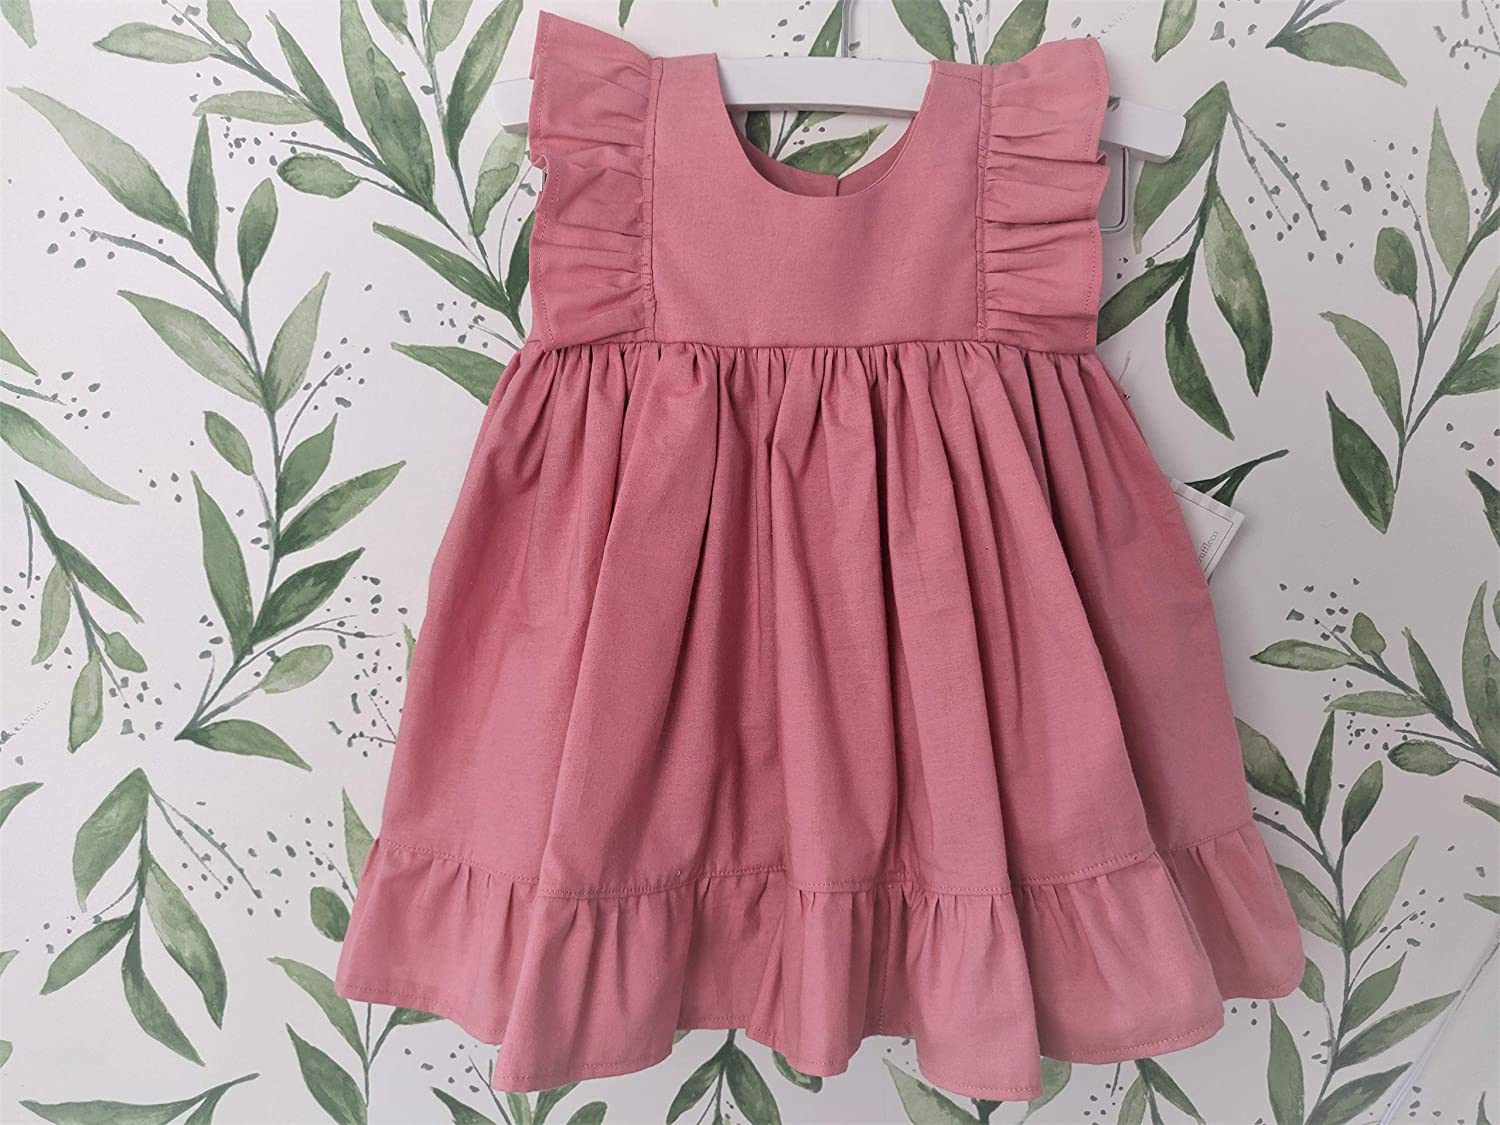 Baby Girl Cotton Dress Denver Mall Rose Max 67% OFF in